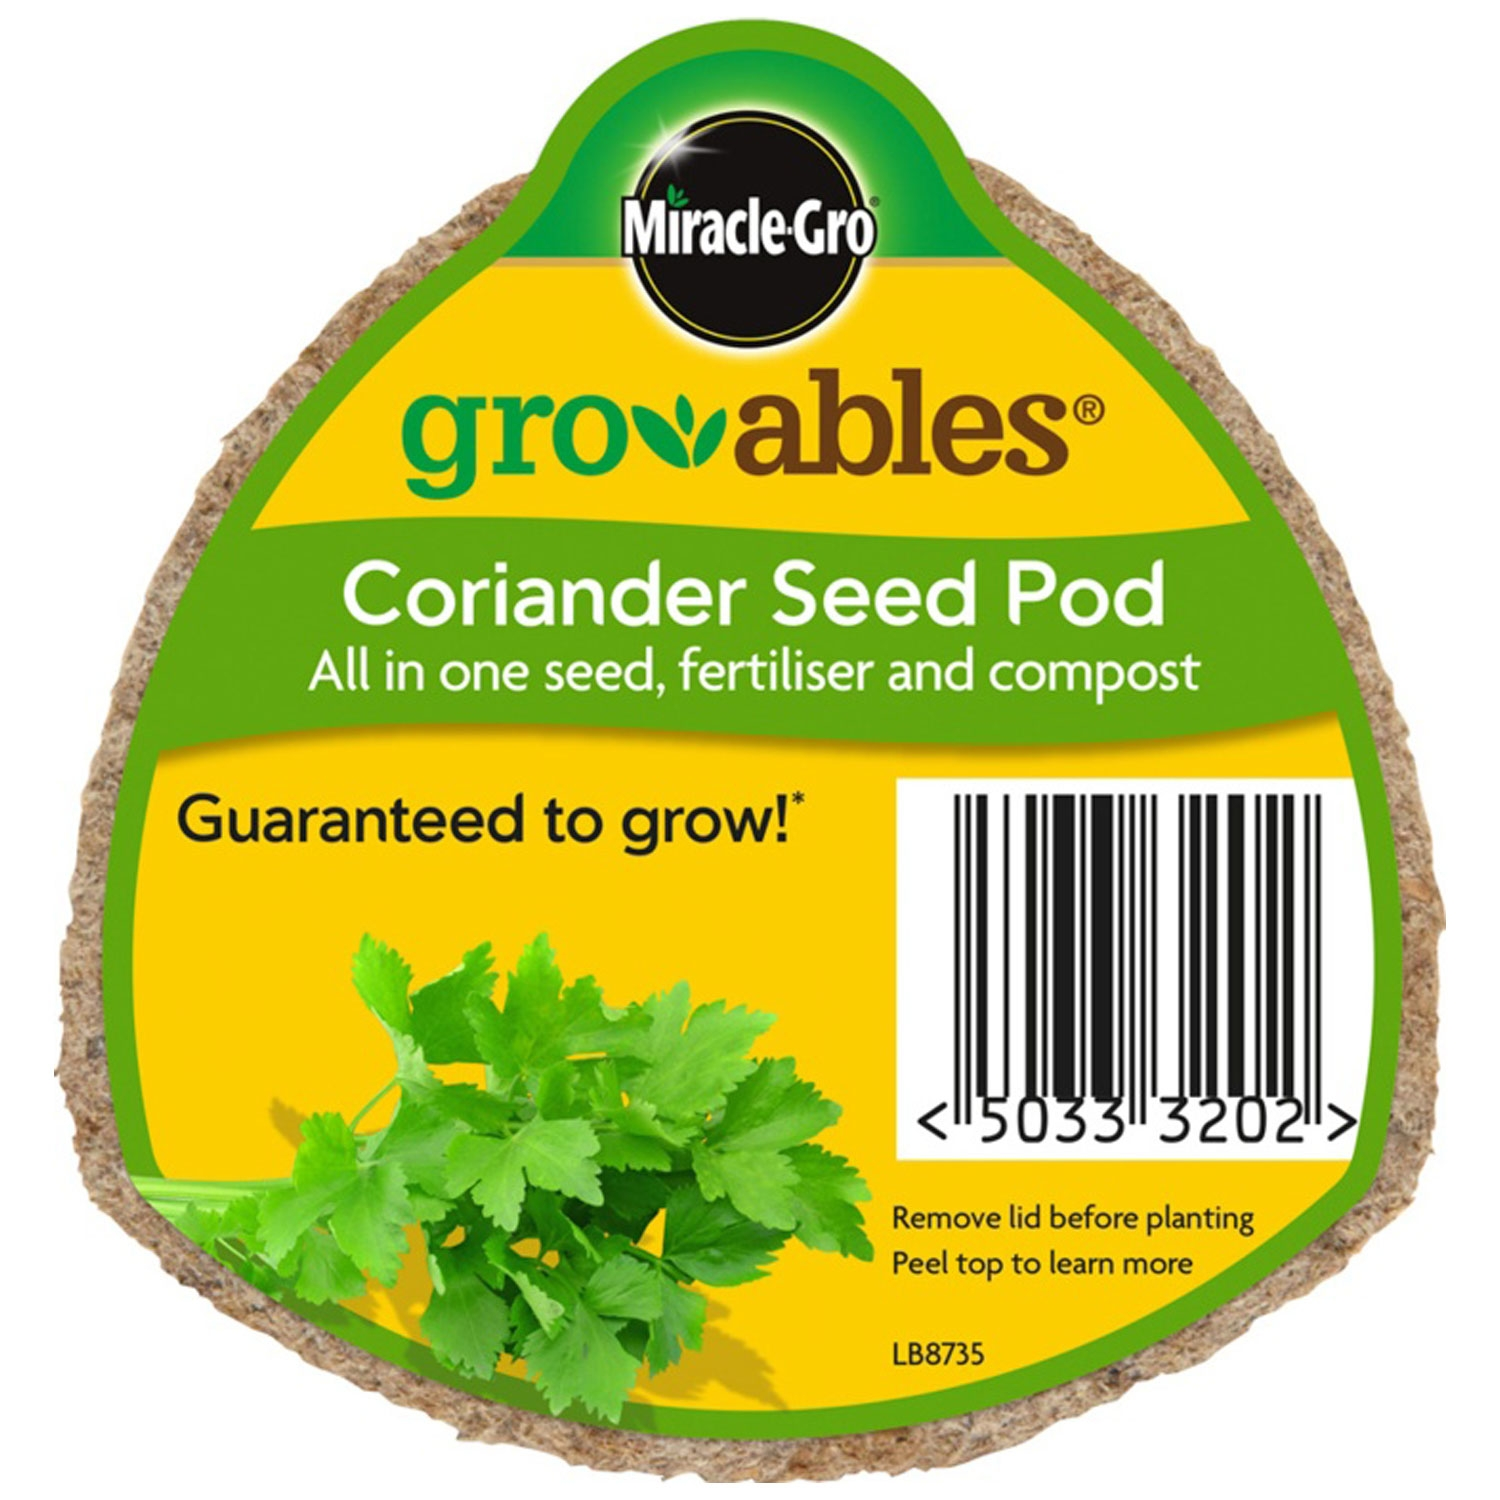 Miracle-Gro Groables Coriander